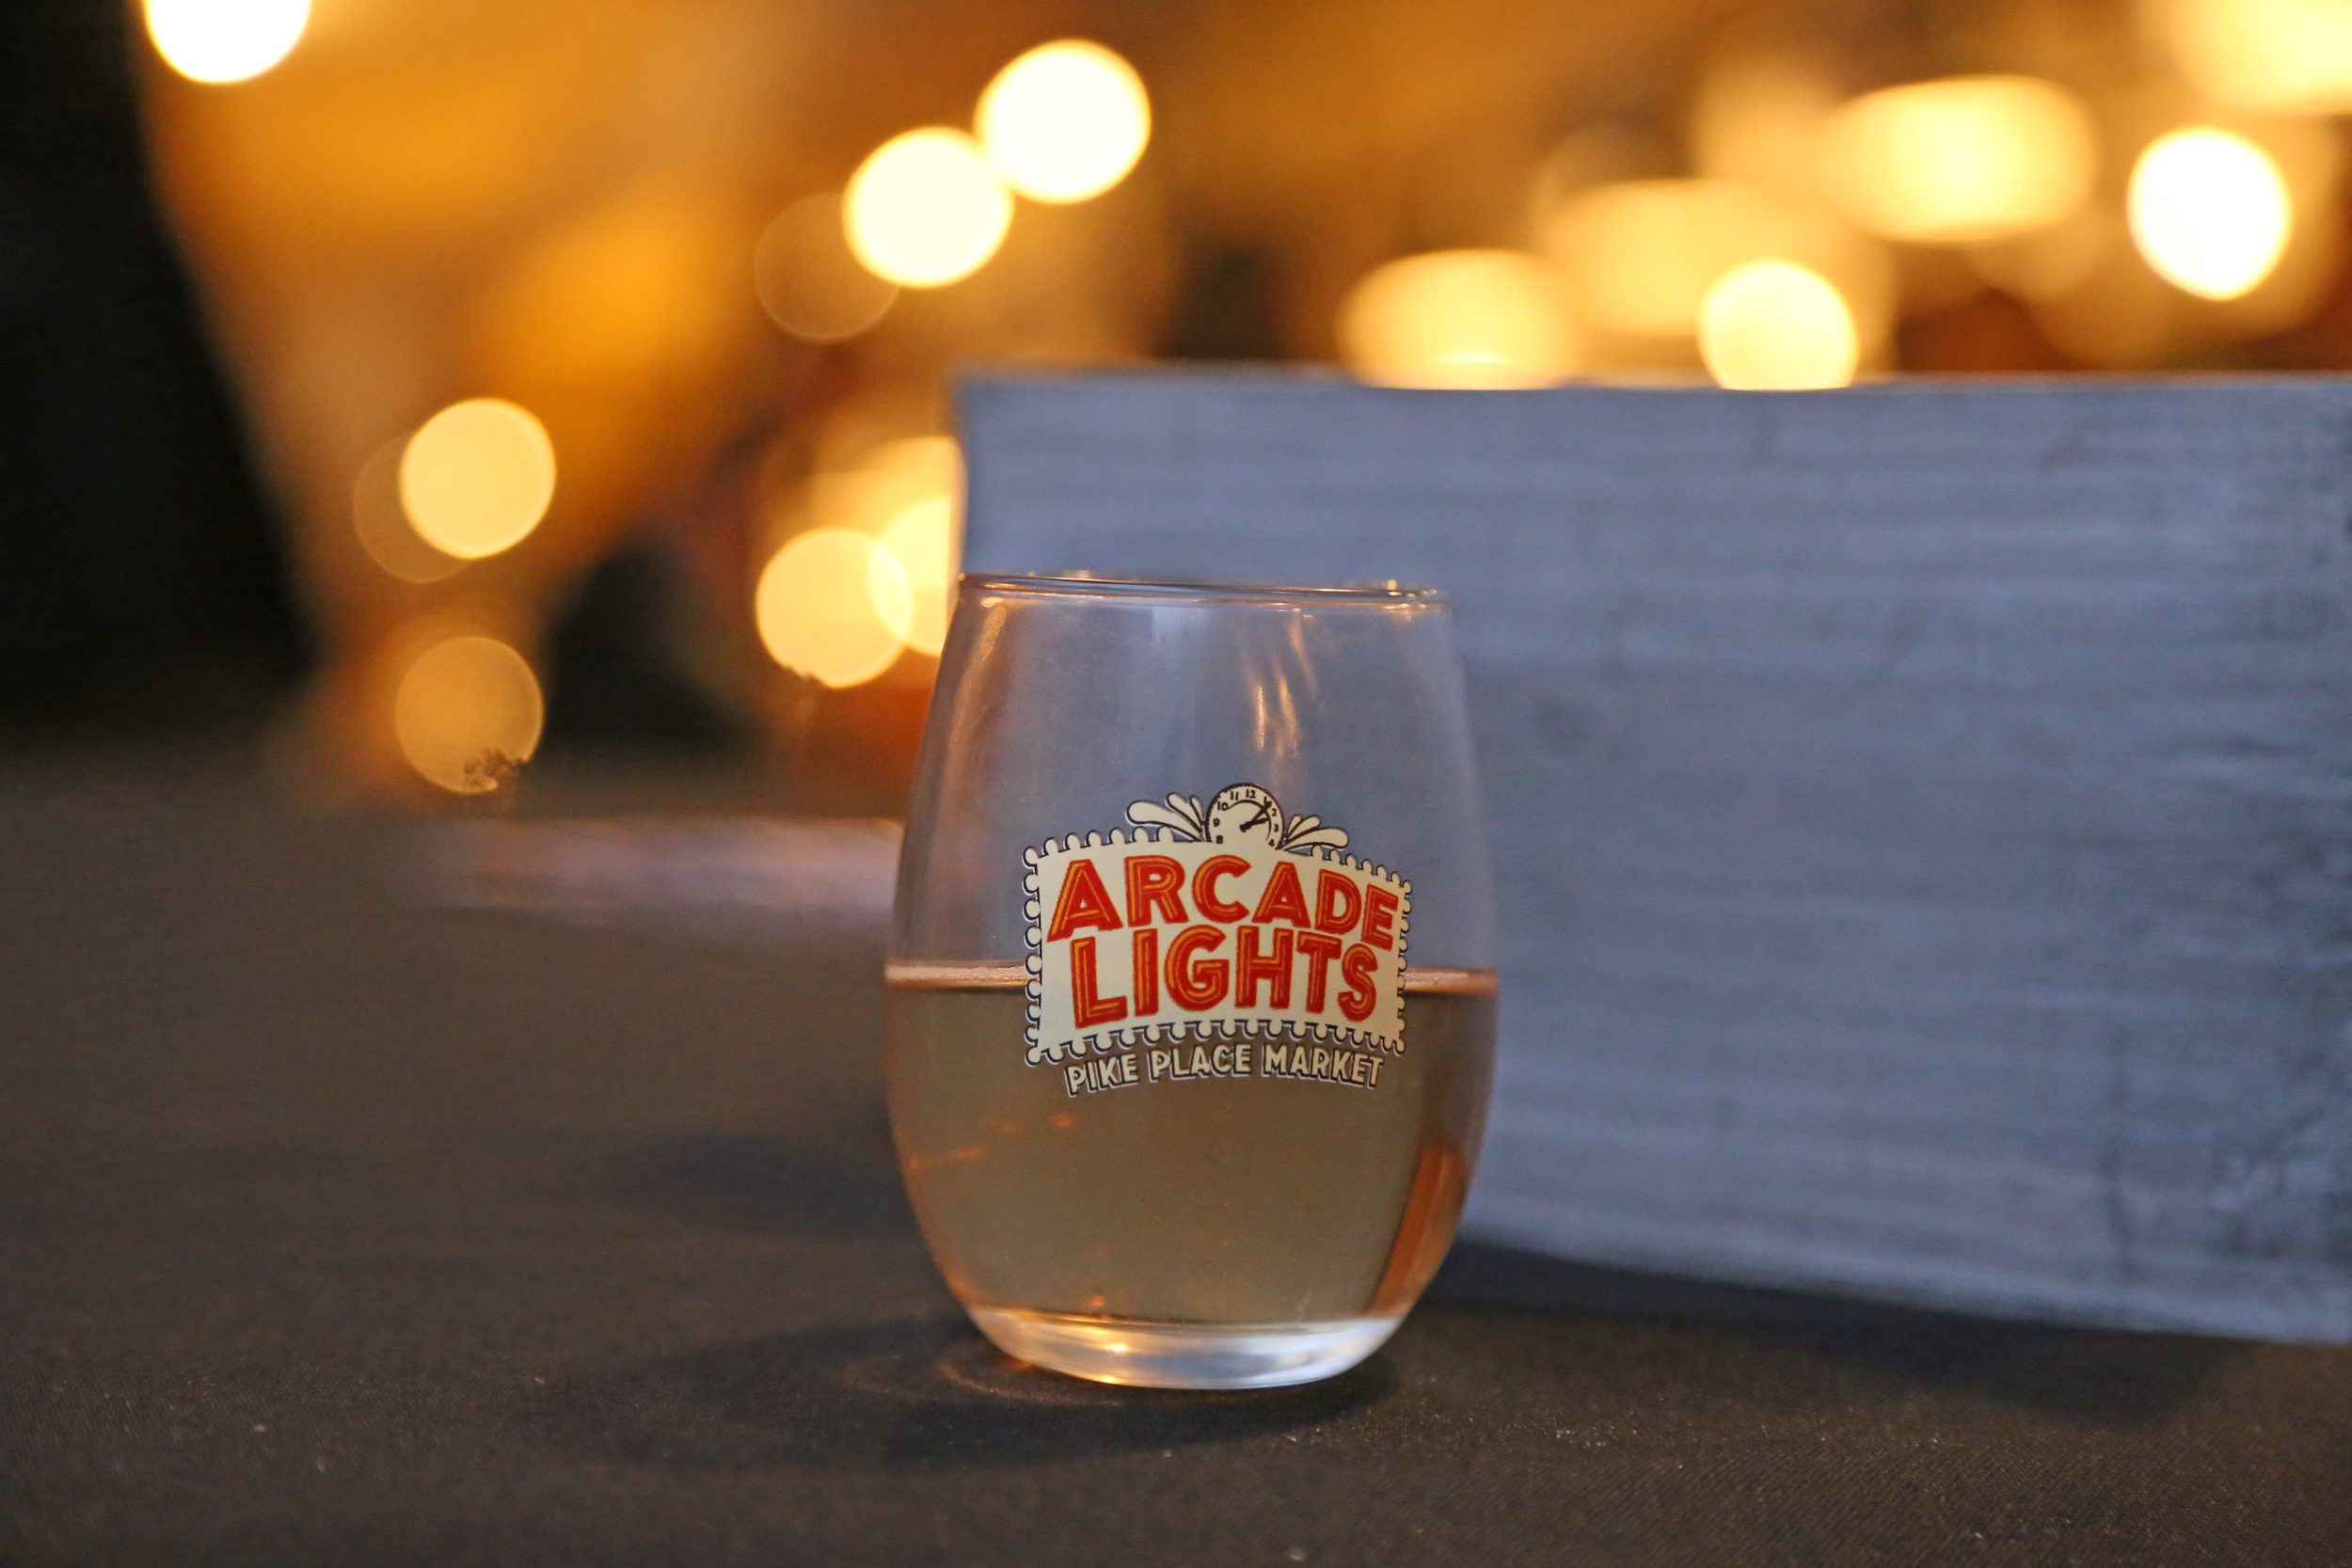 Every attendee gets a souvenir glass to take home.